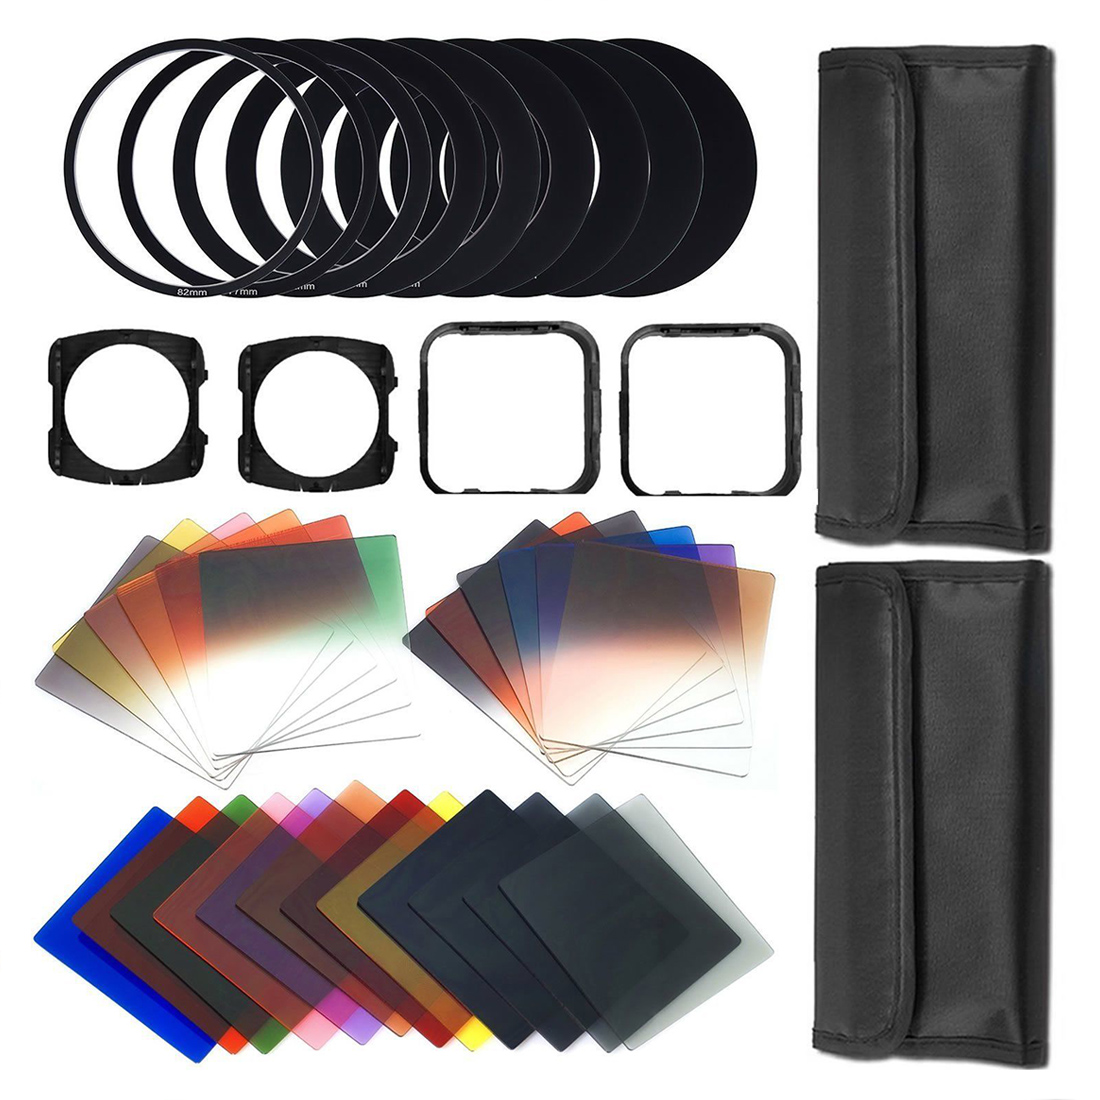 41 Pcs Square gradient lenses + ND Filter Kit Camera Filters for All Lenses by replacing adaptor ring w/Wallet Skin Case